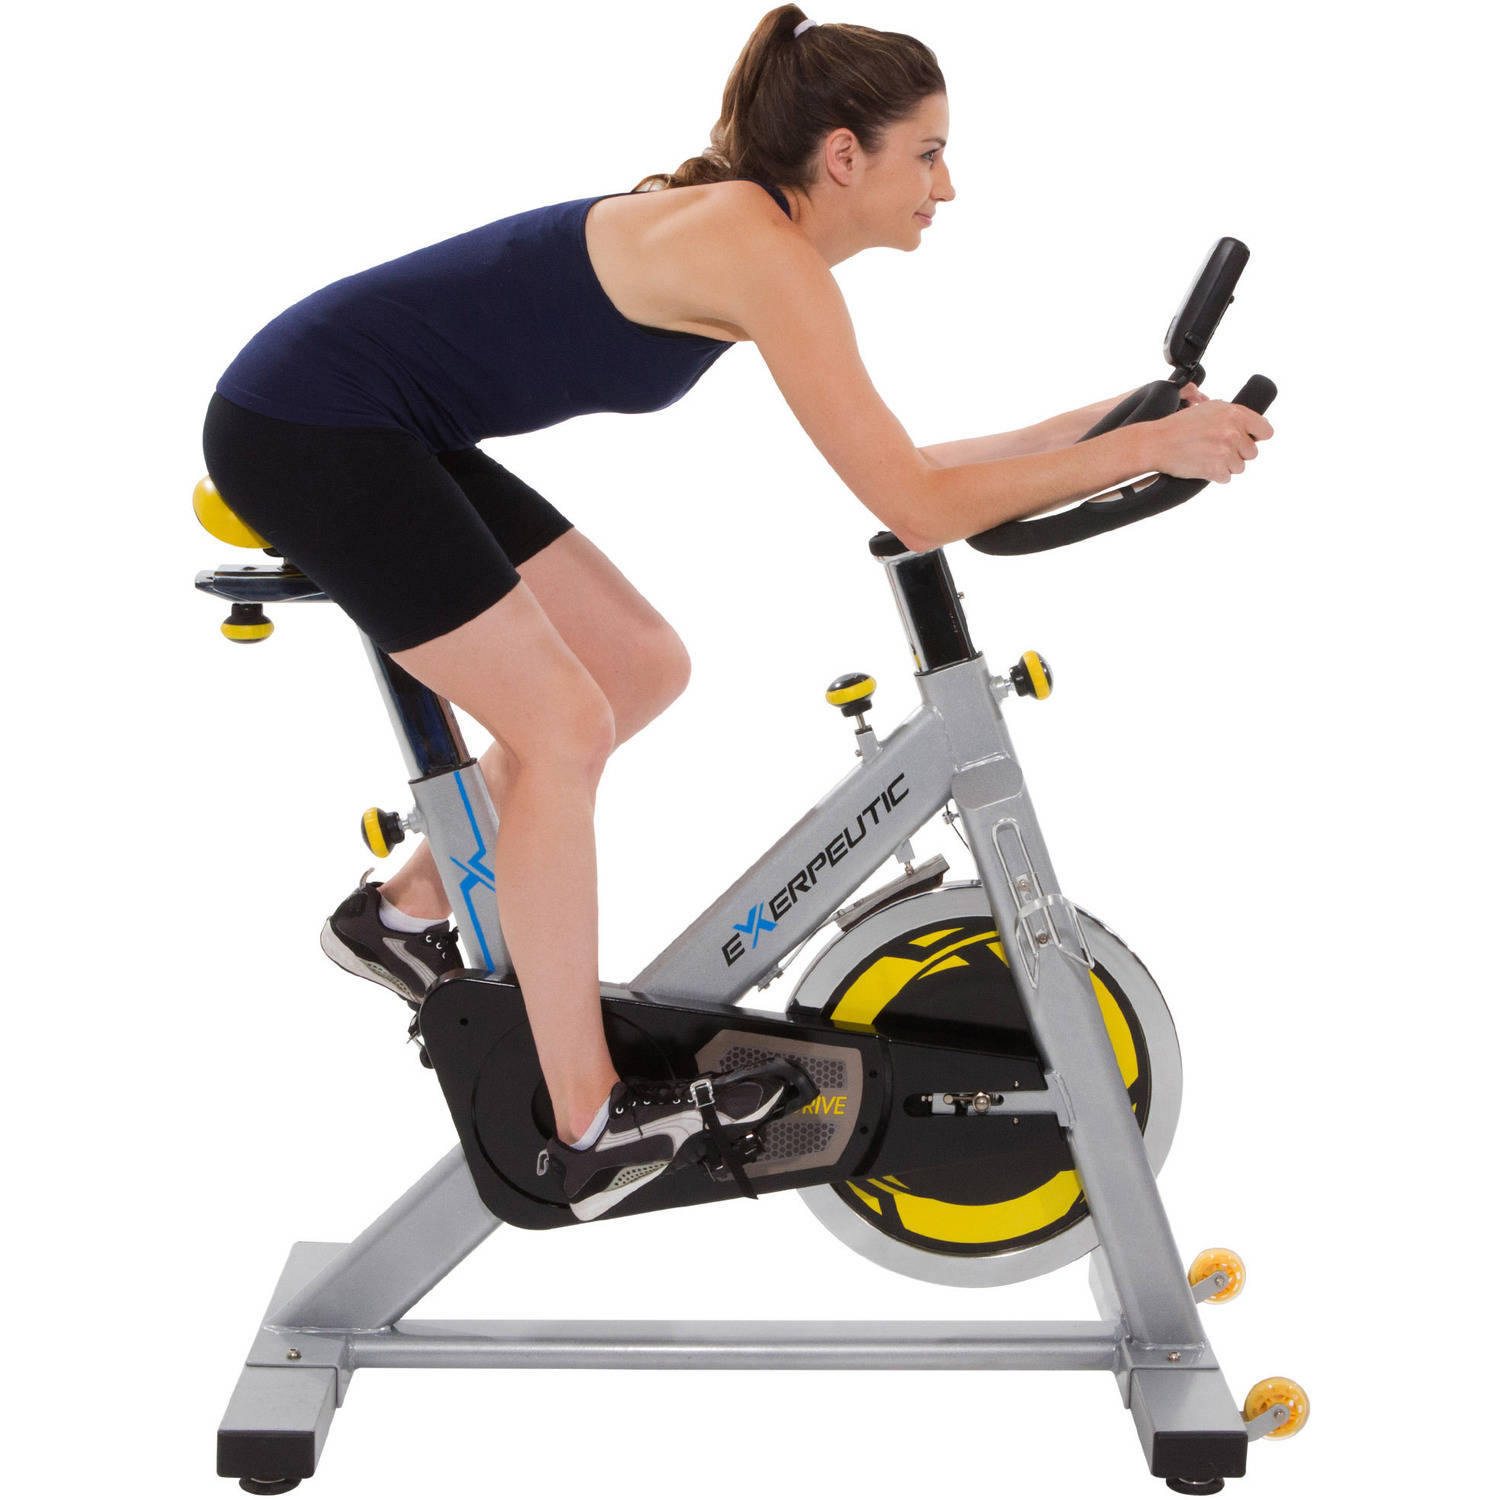 Exerpeutic LX905 Indoor Exercise Cycling Bike with Computer and Heart Pulse Sensors by Generic